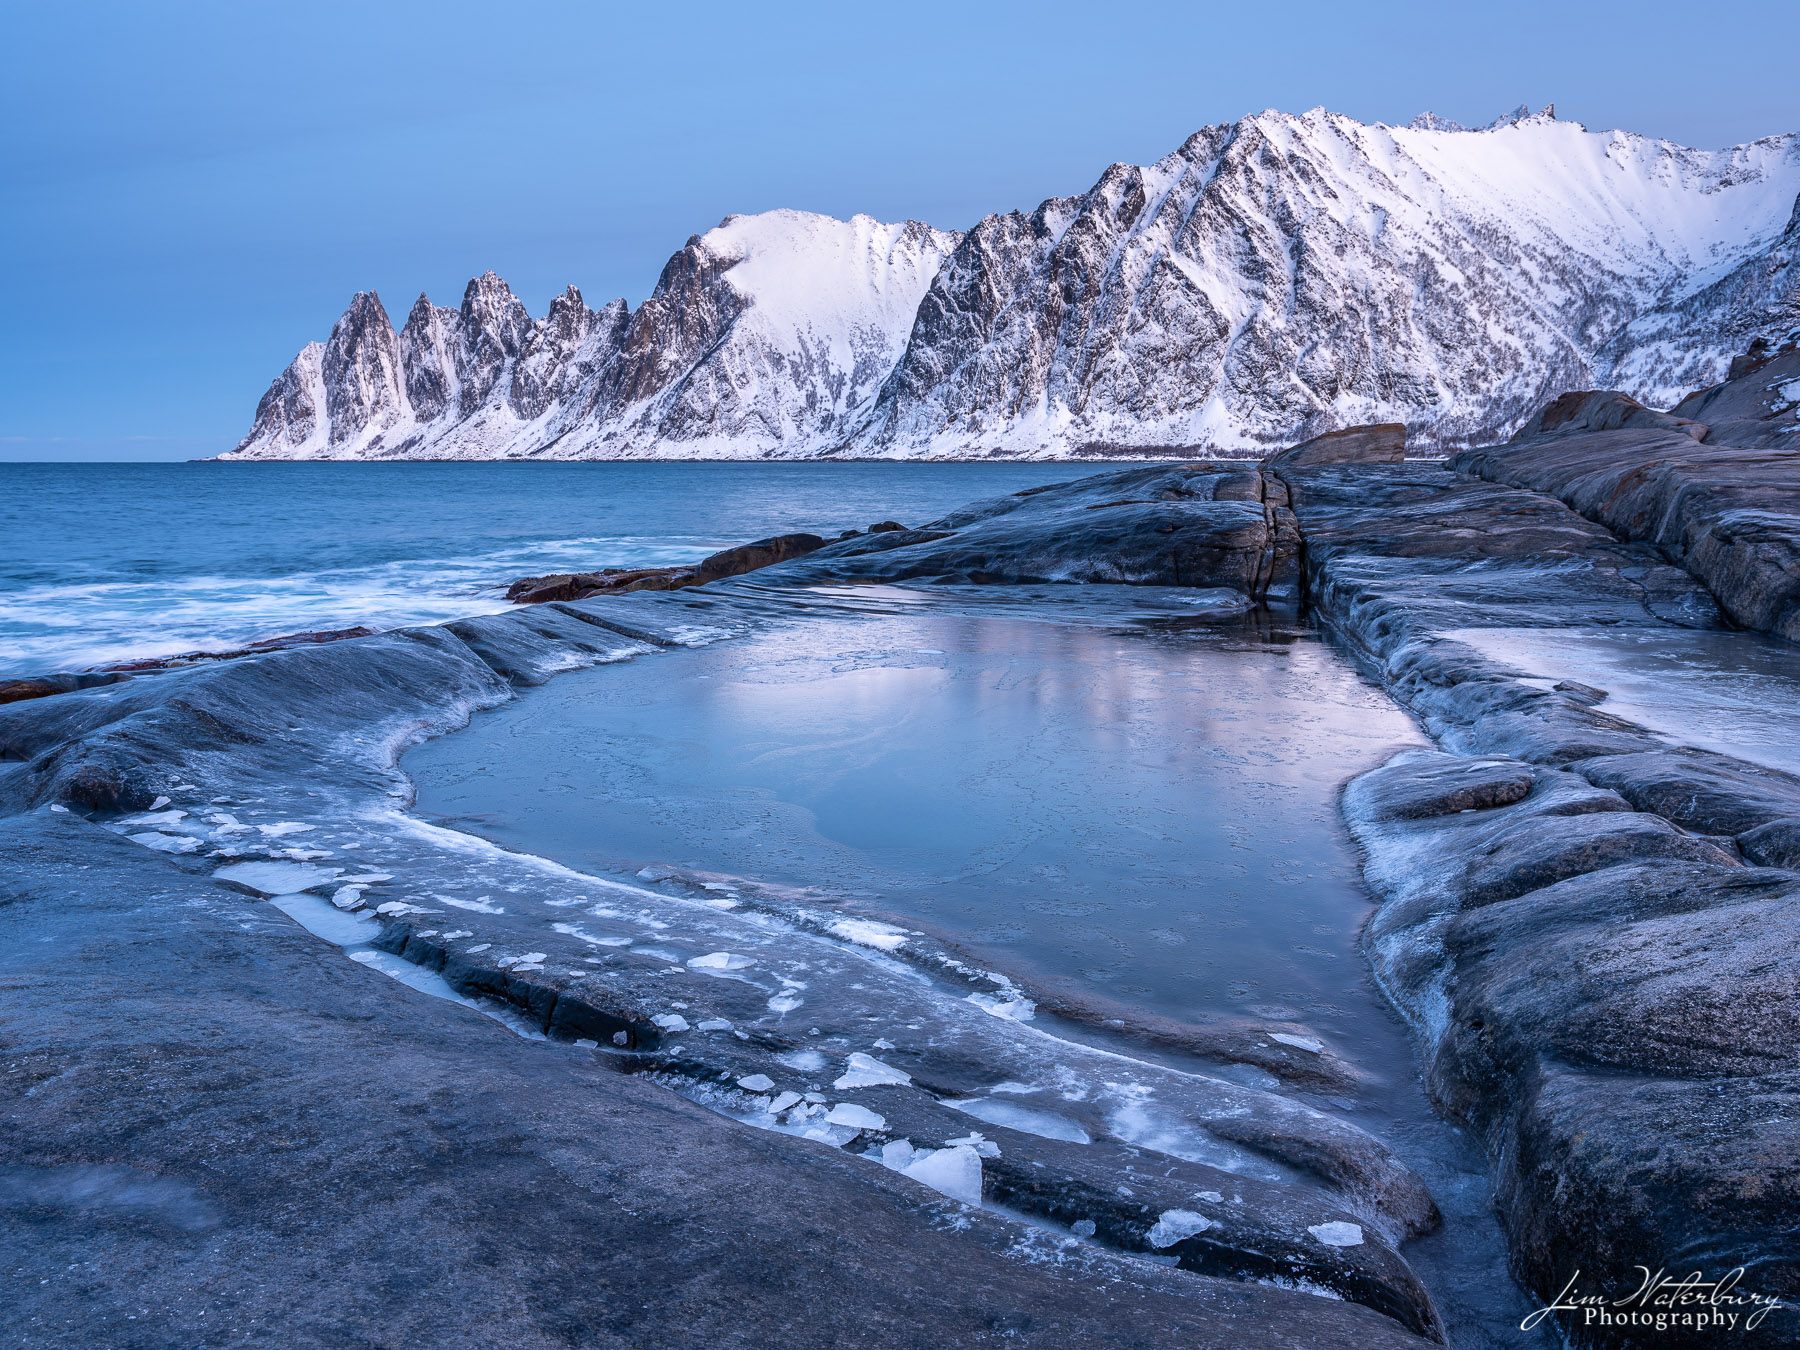 Early morning view of snow-covered mountains from a rocky point across the fjord, taken near Tungeneset, on the island of Senja...